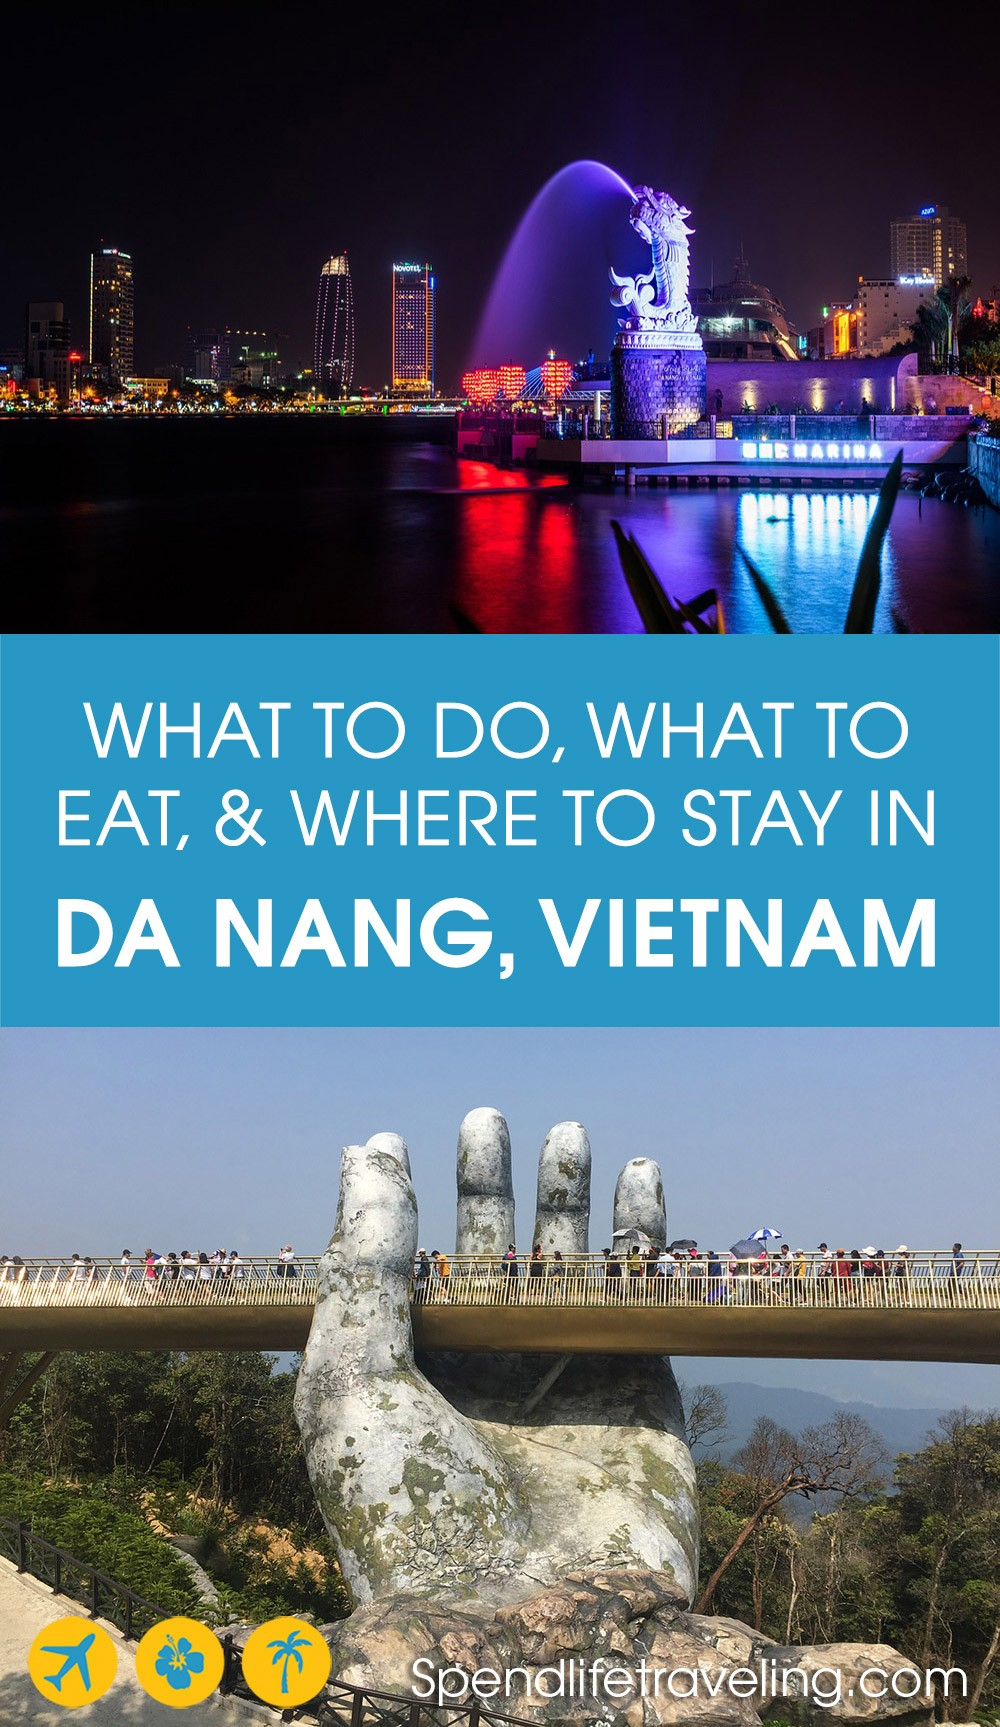 A practical travel guide for Da Nang for the perfect short visit. #DaNang #travelVietnam #visitVietnam